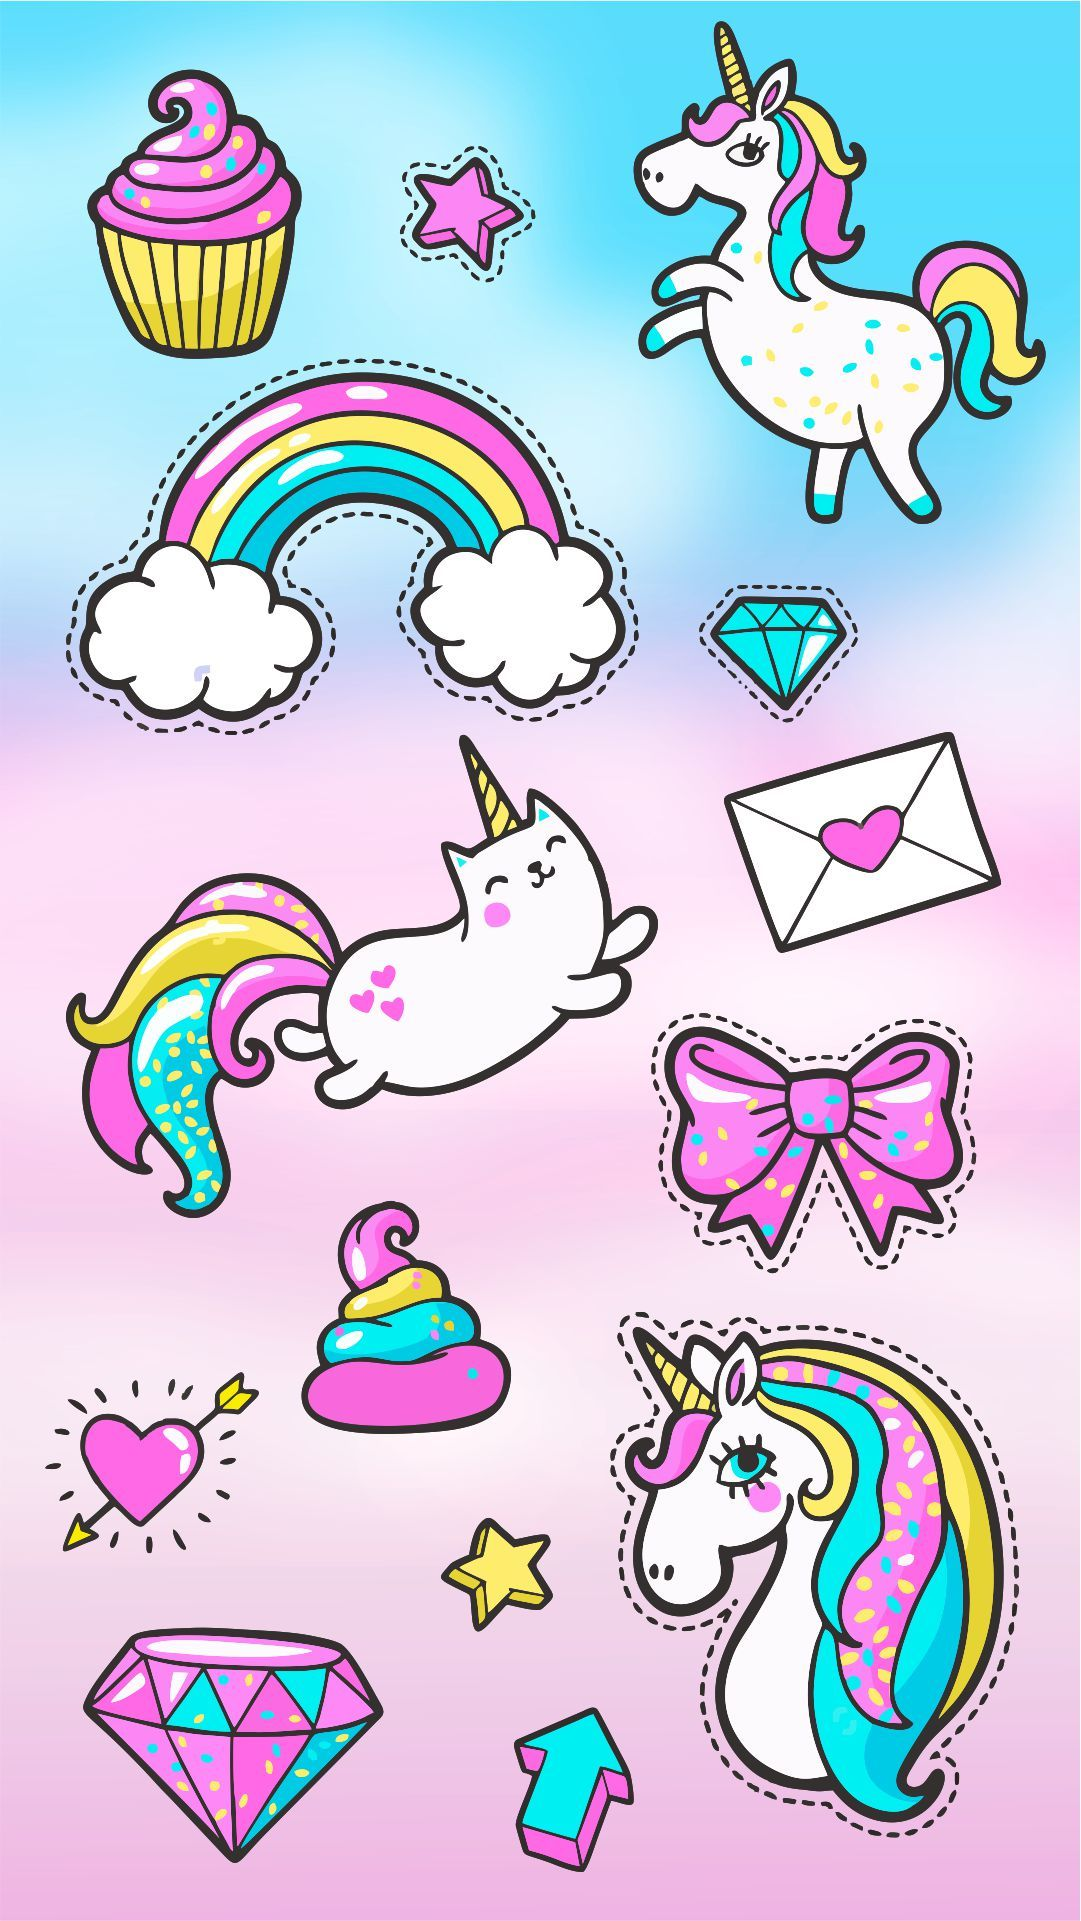 Stickers Fantasía Wallpaper Pinterest Unicorn Unicorn